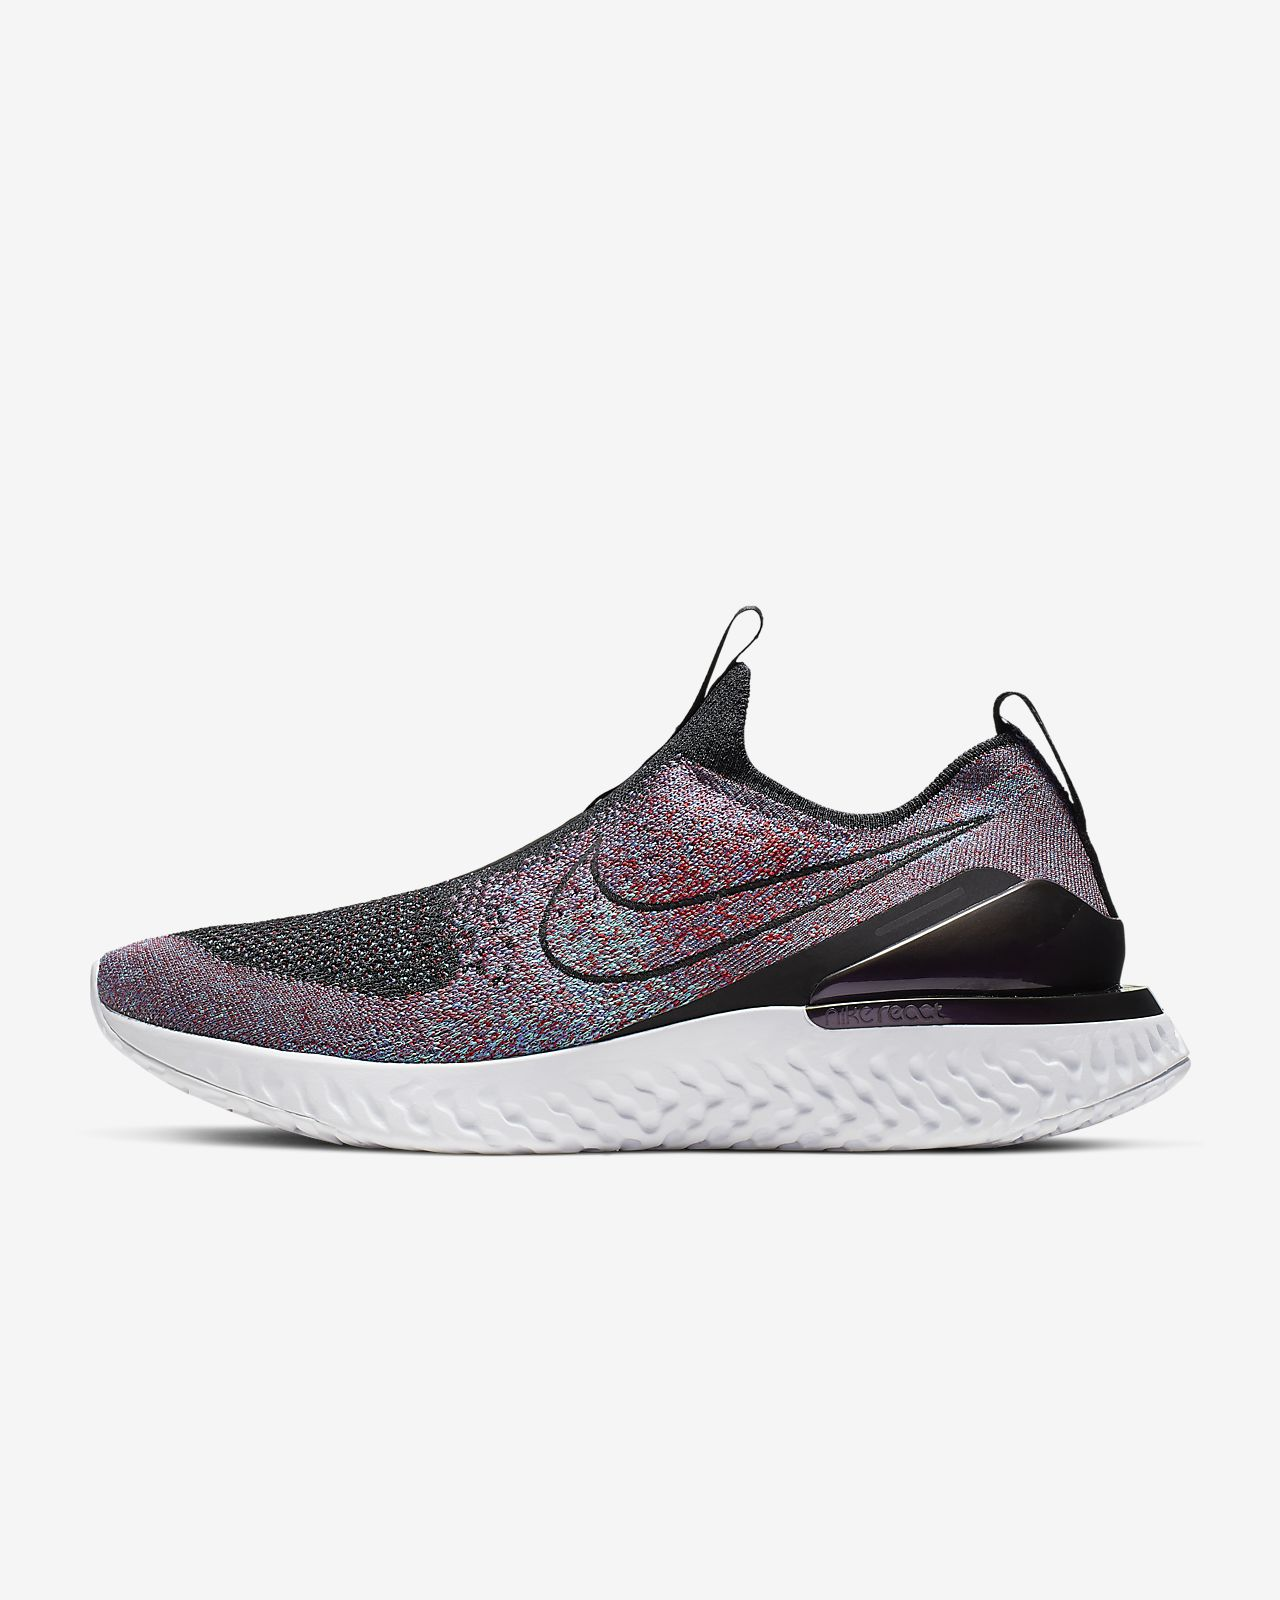 buy popular afbfa 6e06f ... Nike Epic Phantom React Flyknit Men s Running Shoe